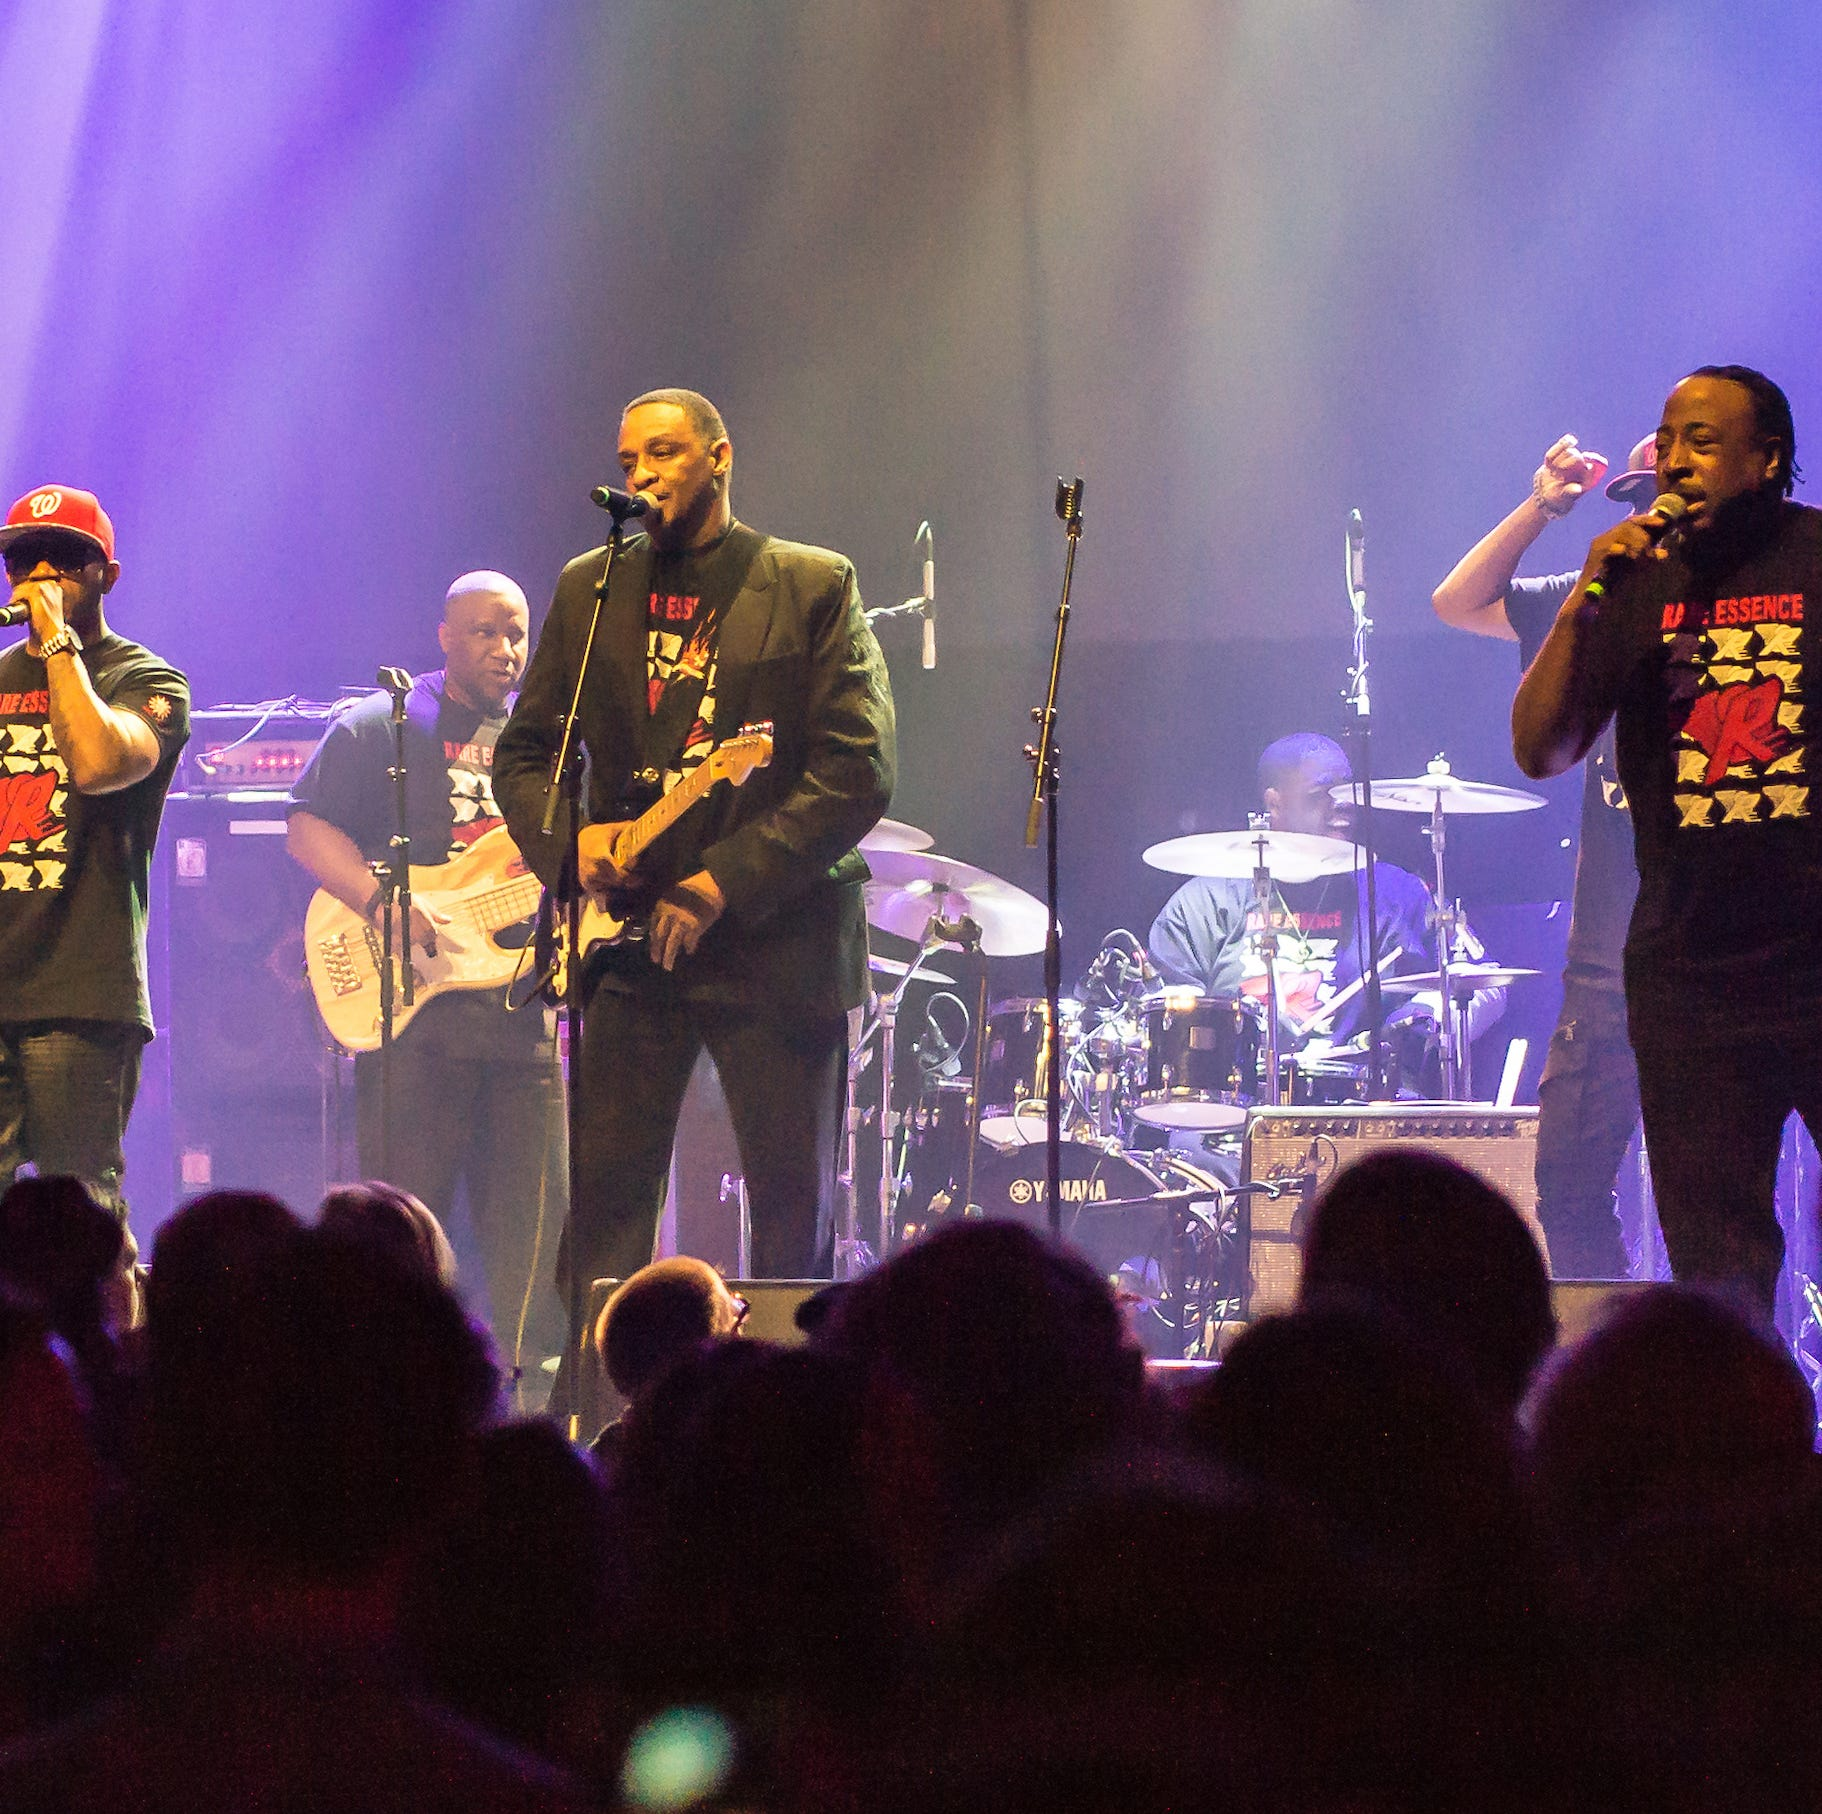 National Folk Festival: D.C.'s Rare Essence, three others to perform